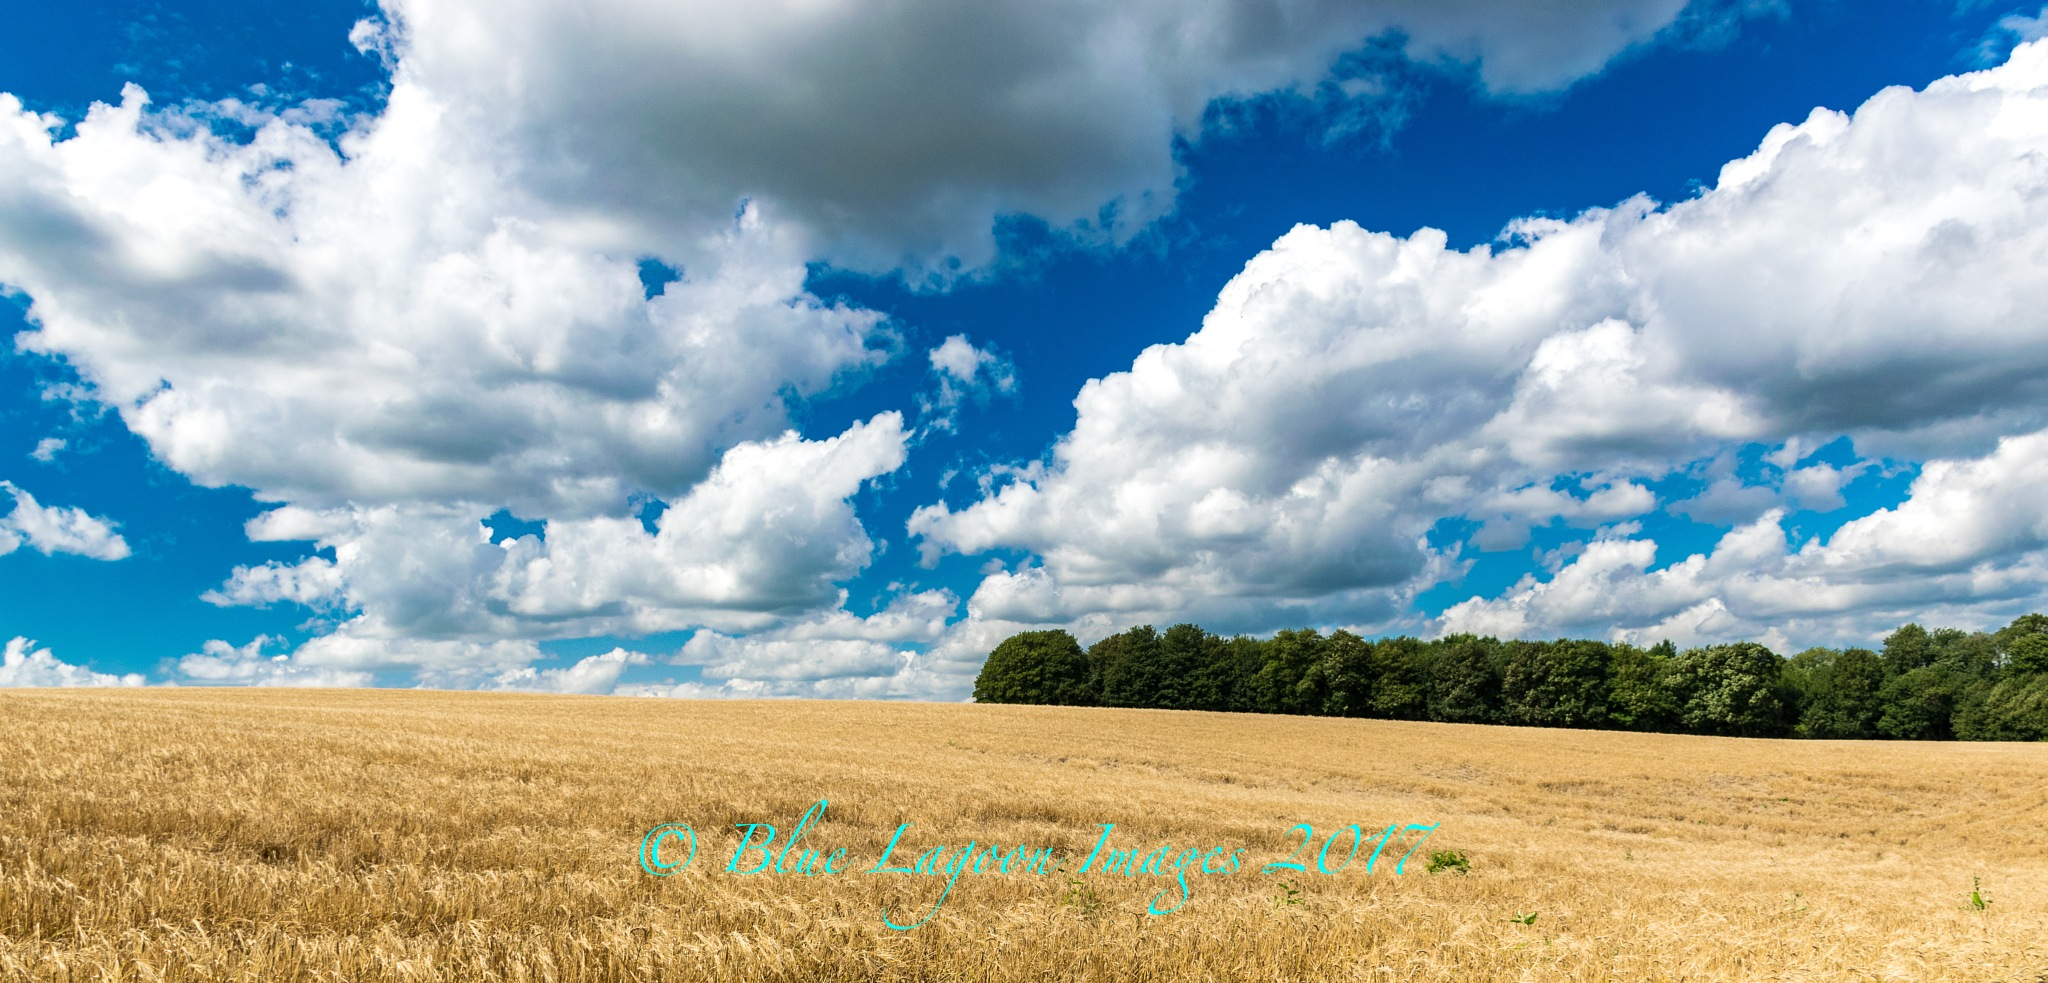 View across the field by Blue Lagoon Images